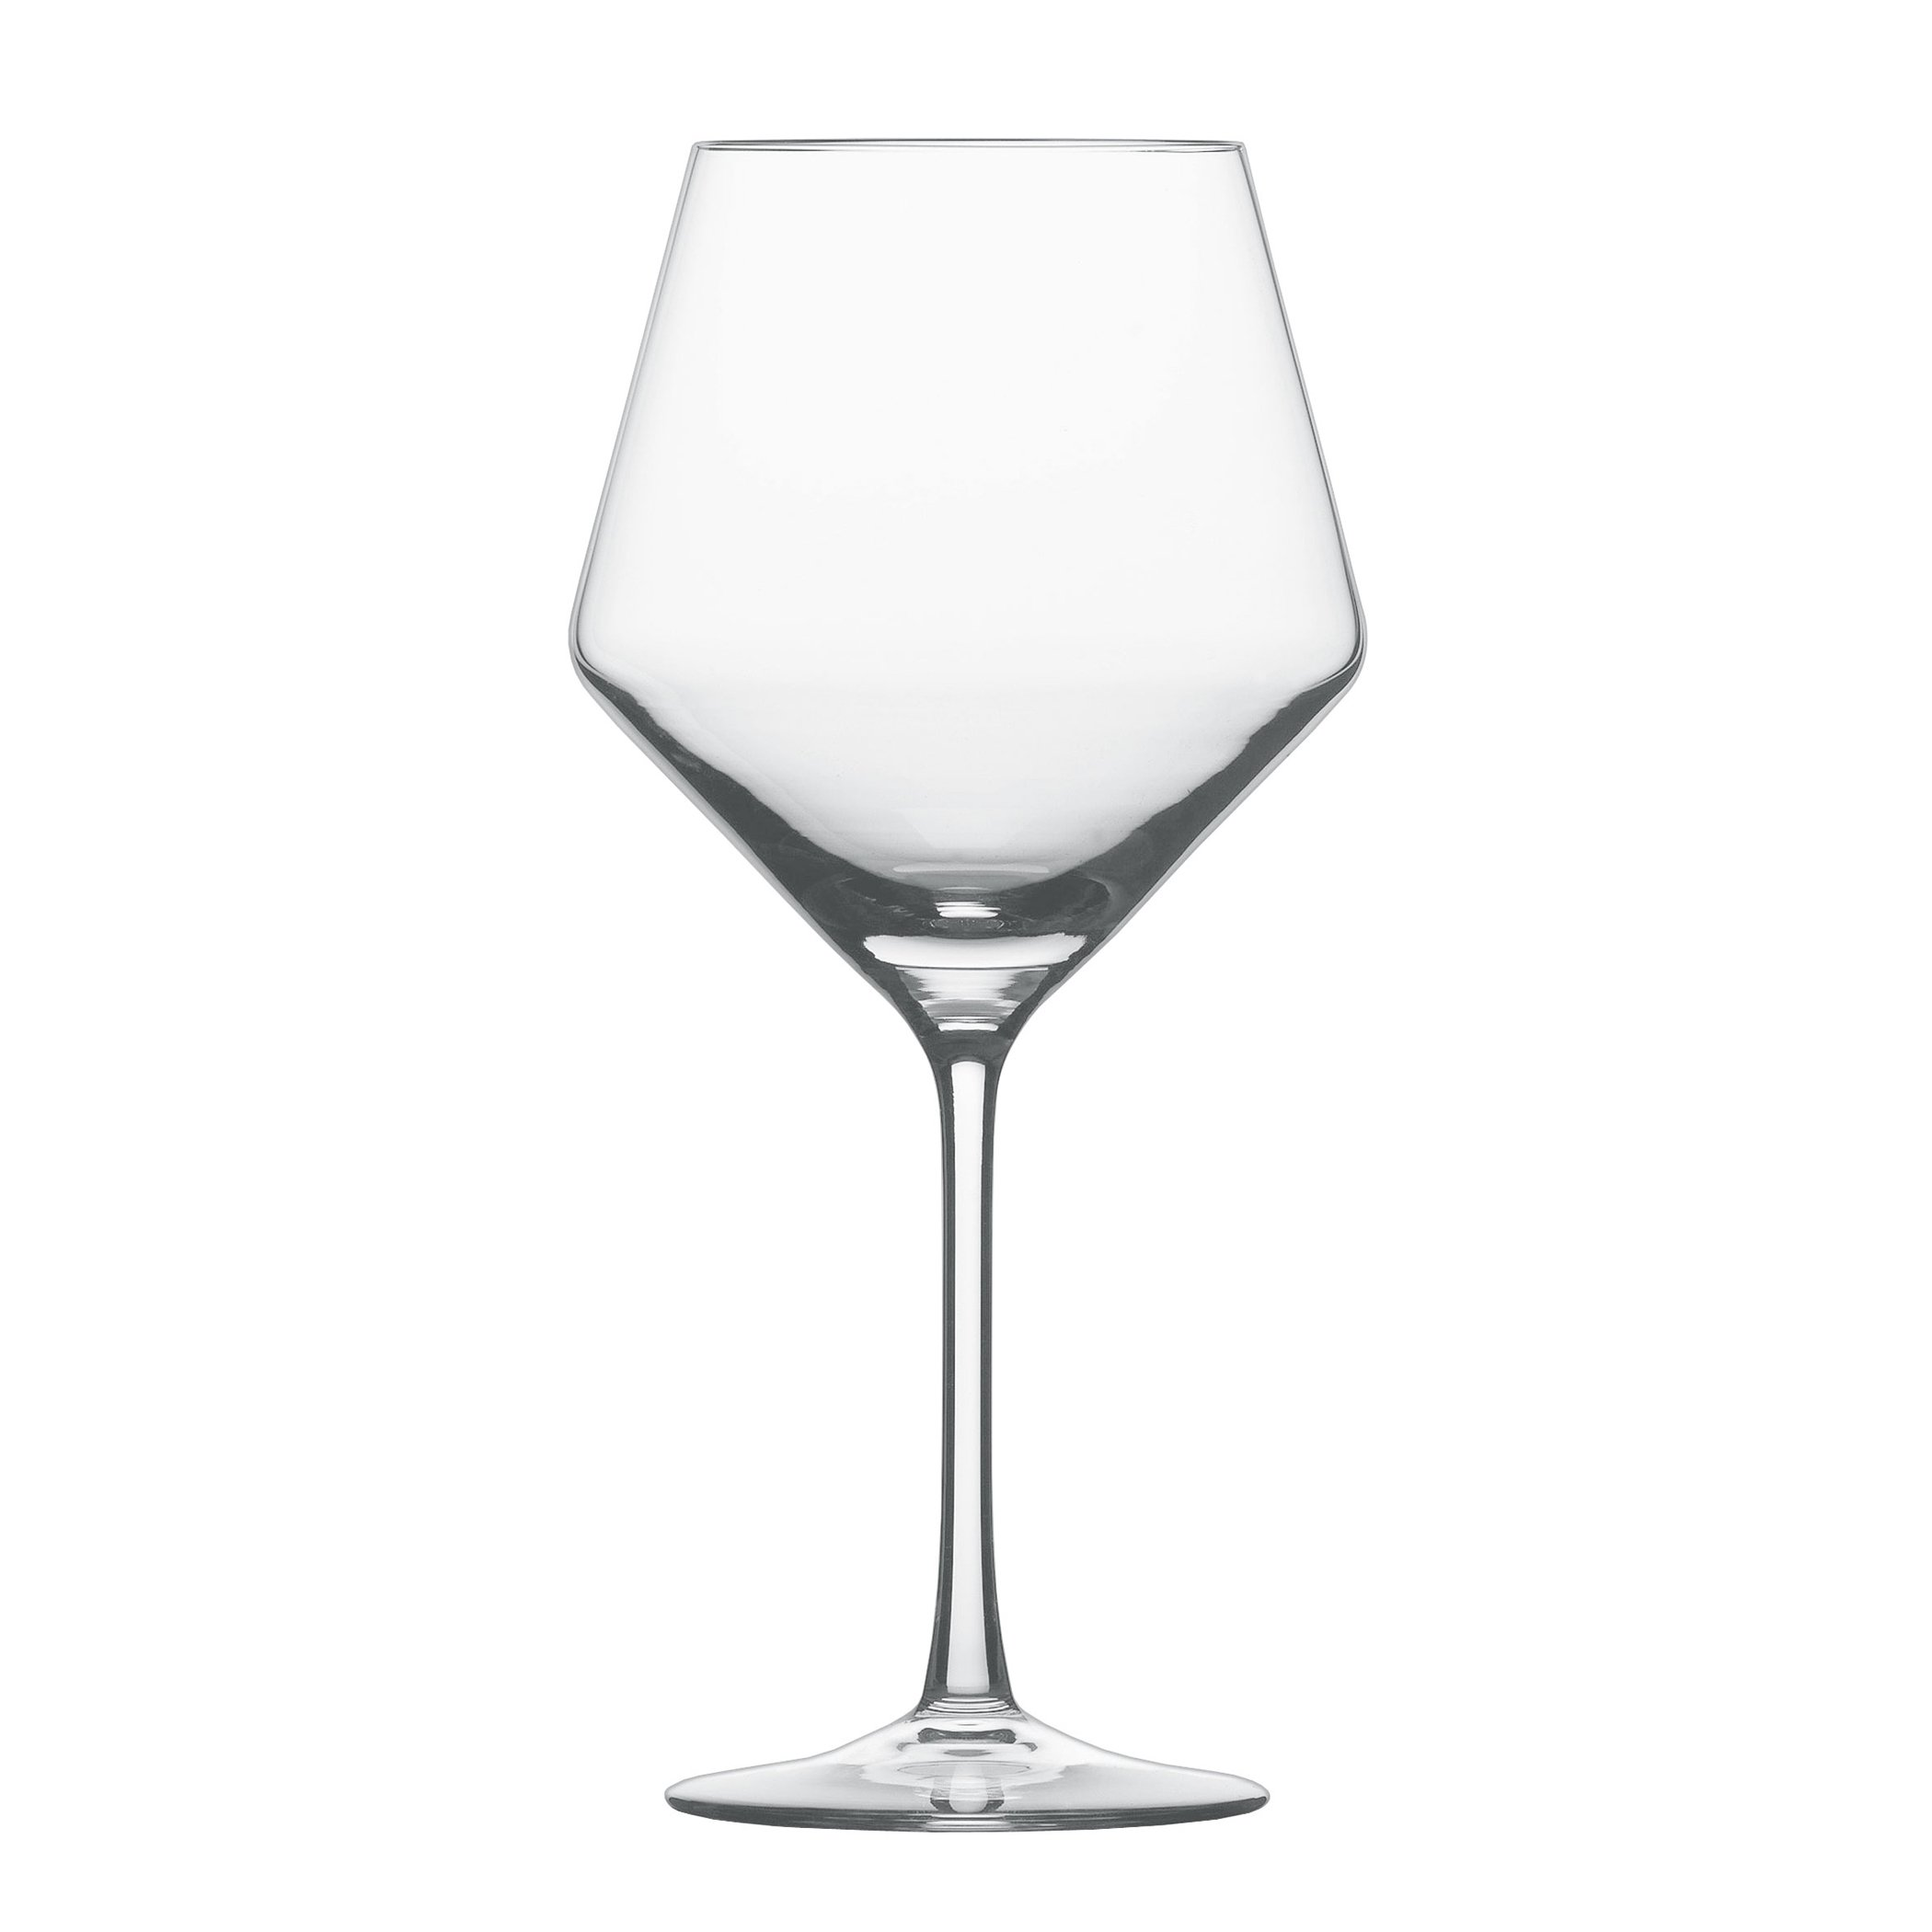 Schott Zwiesel Tritan Crystal Glass Pure Stemware Collection Burgundy Red Wine Glass, 23.4-Ounce, Set of 4 by Schott Zwiesel